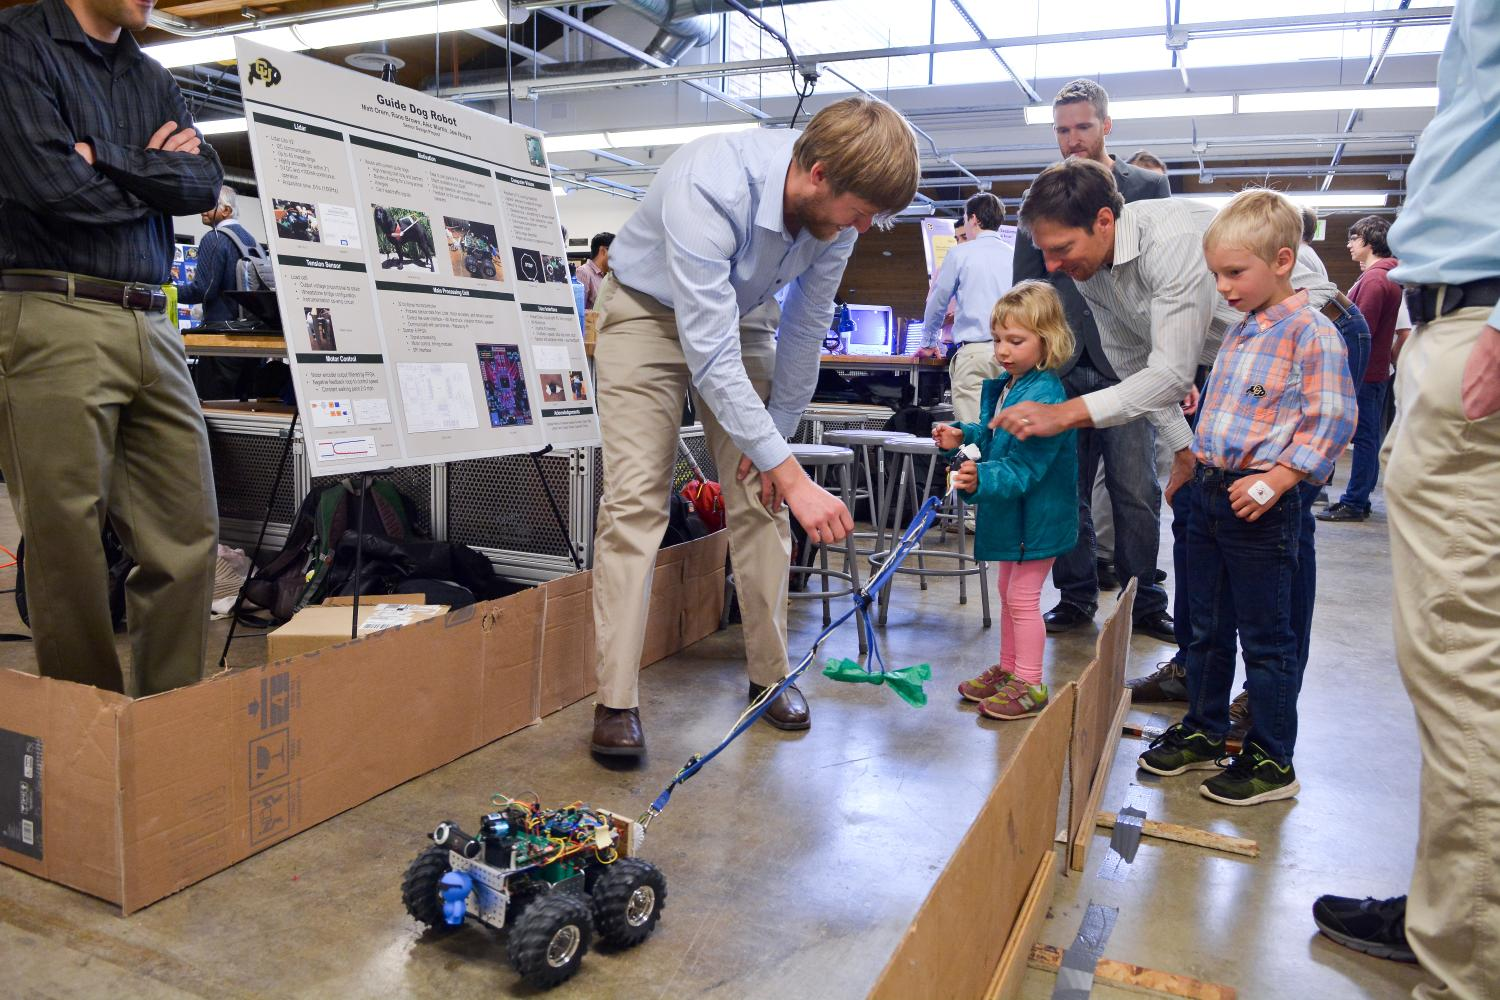 A child operates a guide dog robot at the 2016 ECEE senior design expo.